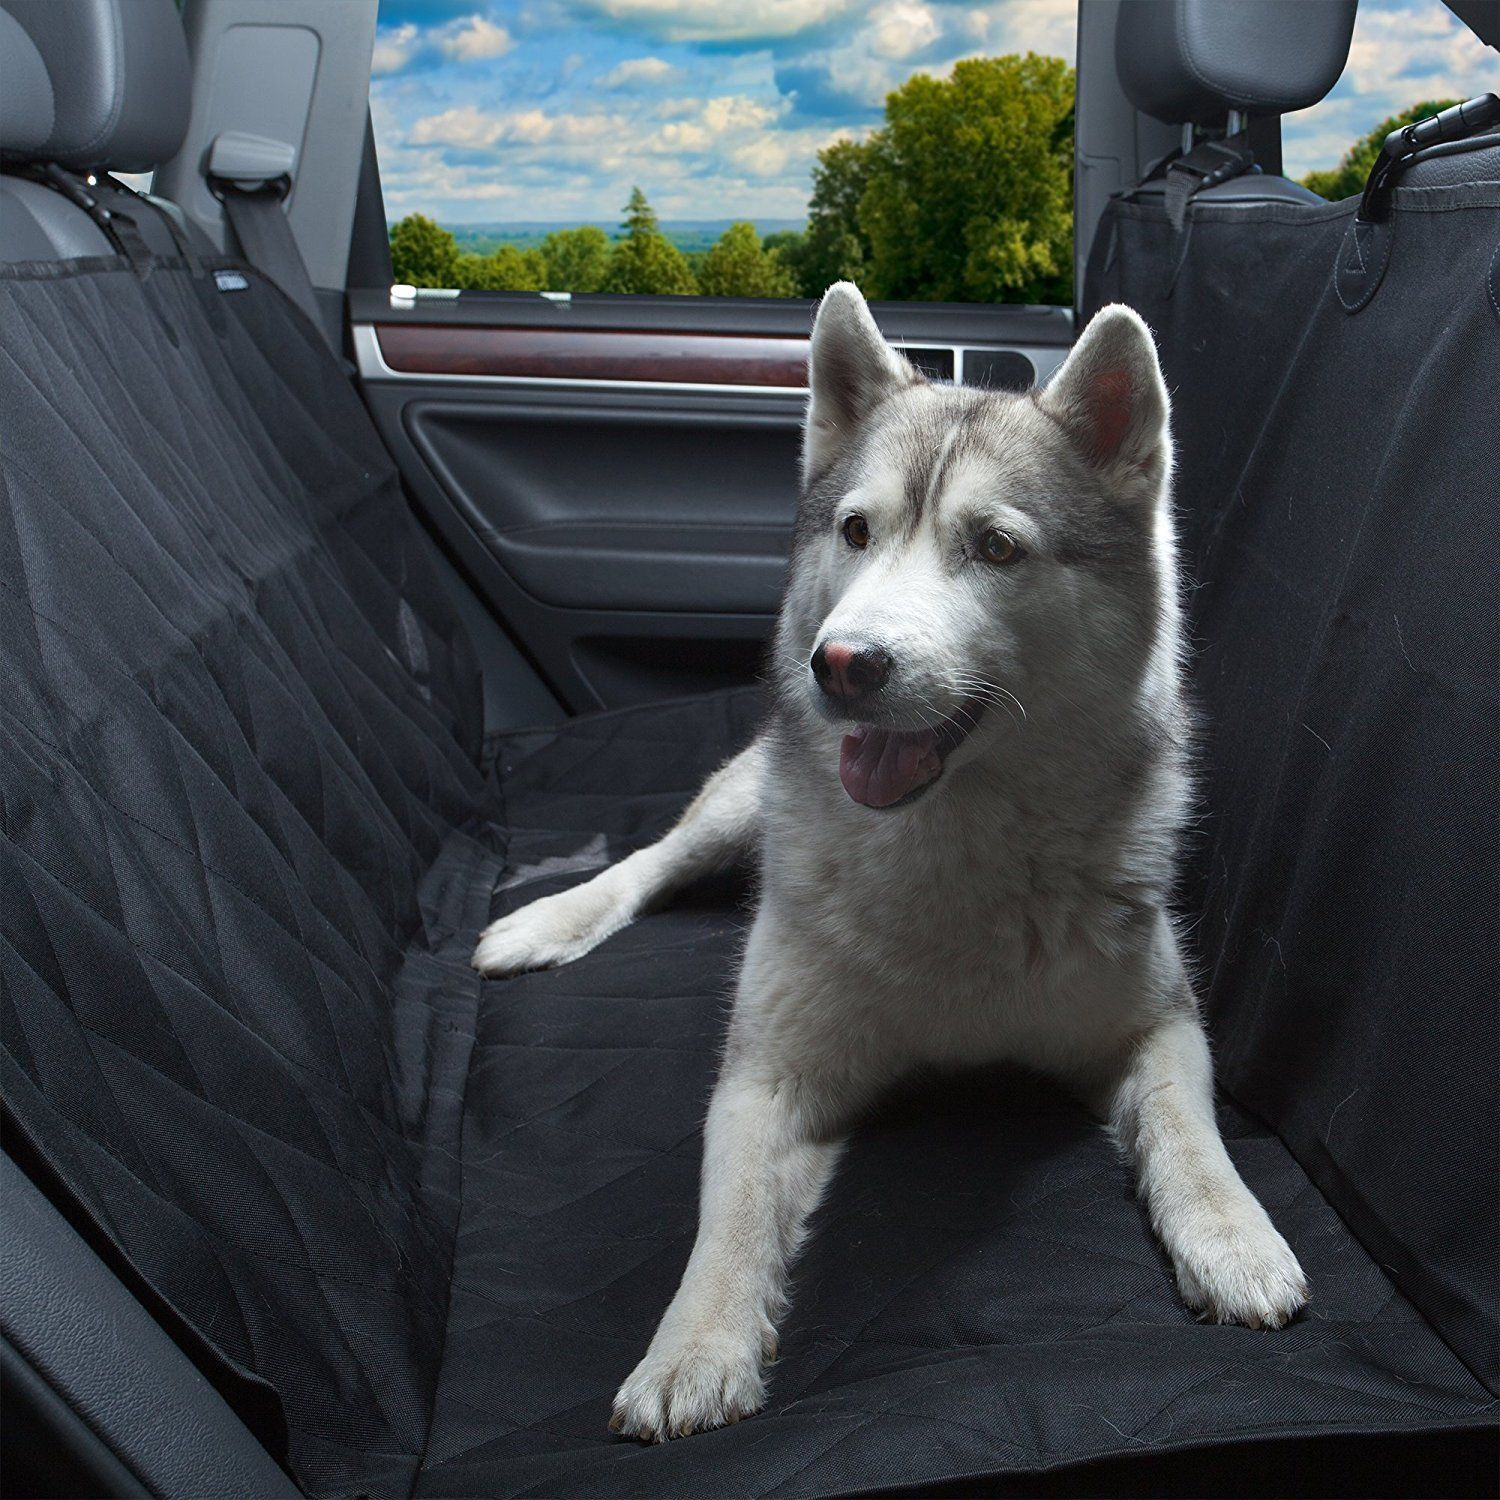 Yunanwa Pet Seat Cover Dog Hammock Waterproof Seat Protector For Cars Trucks Suv Backseat Bench Pad Anti Slip For Shed Dog Dog Hammock Pet Seat Covers Dogs